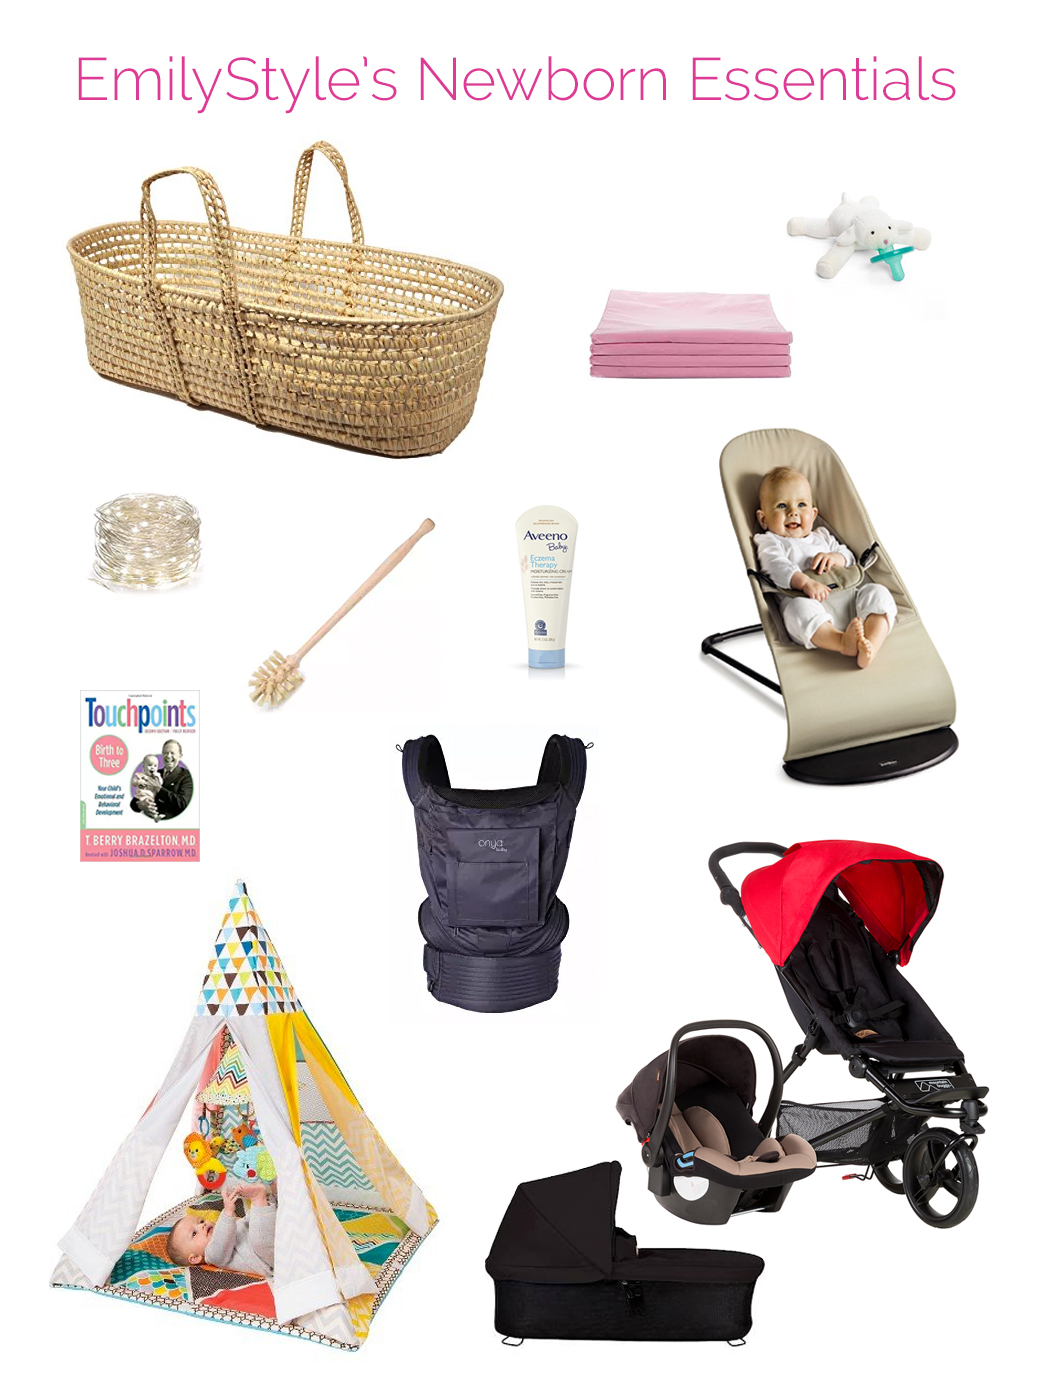 A pragmatic, tested set of newborn essentials